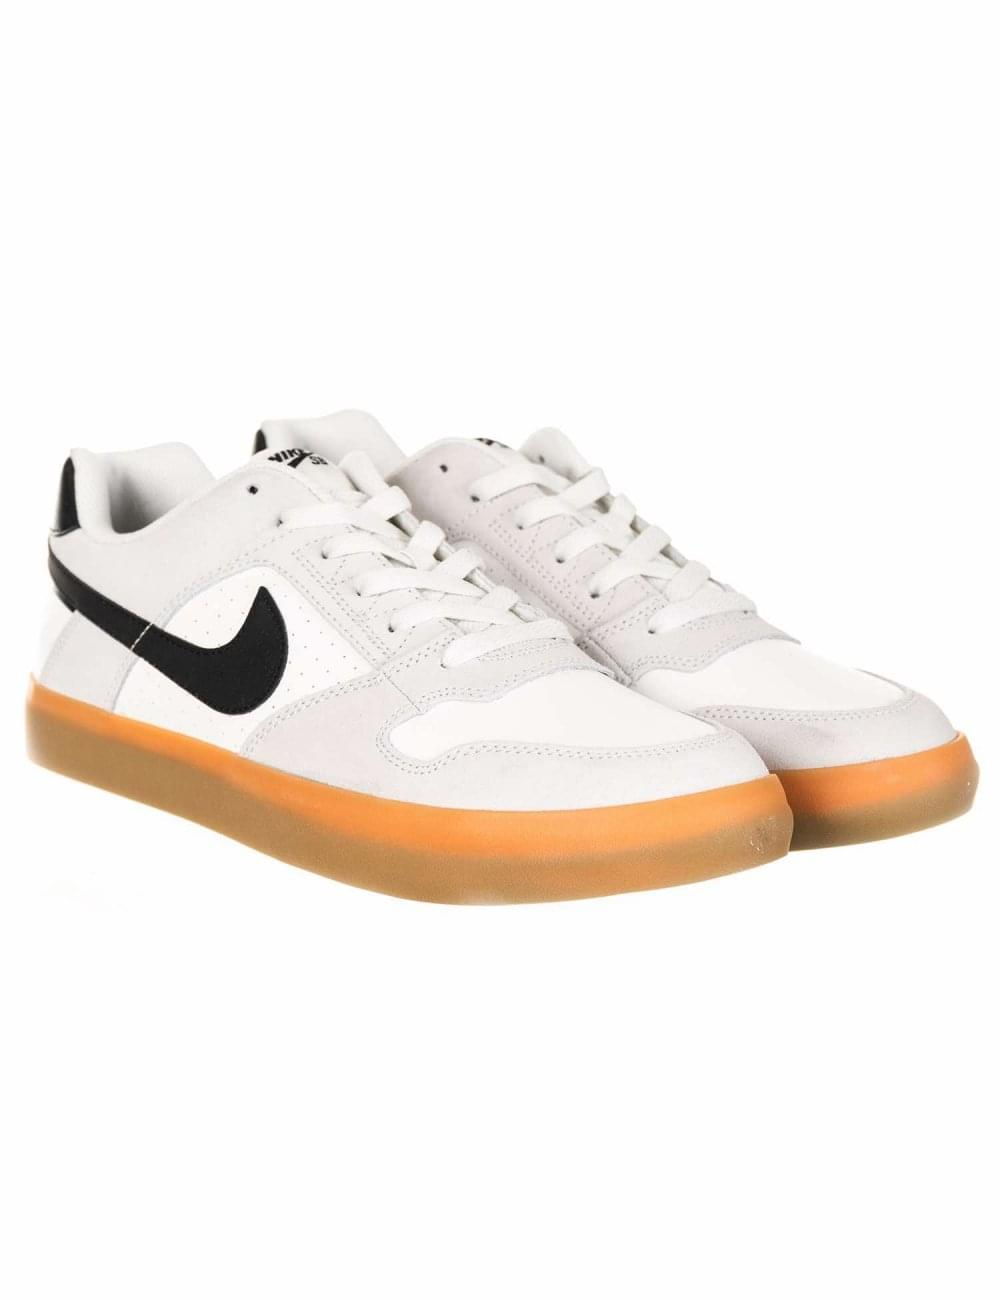 13cbba4402212 Nike SB Delta Force Vulc Trainers - White/Black/Gum - Footwear from ...